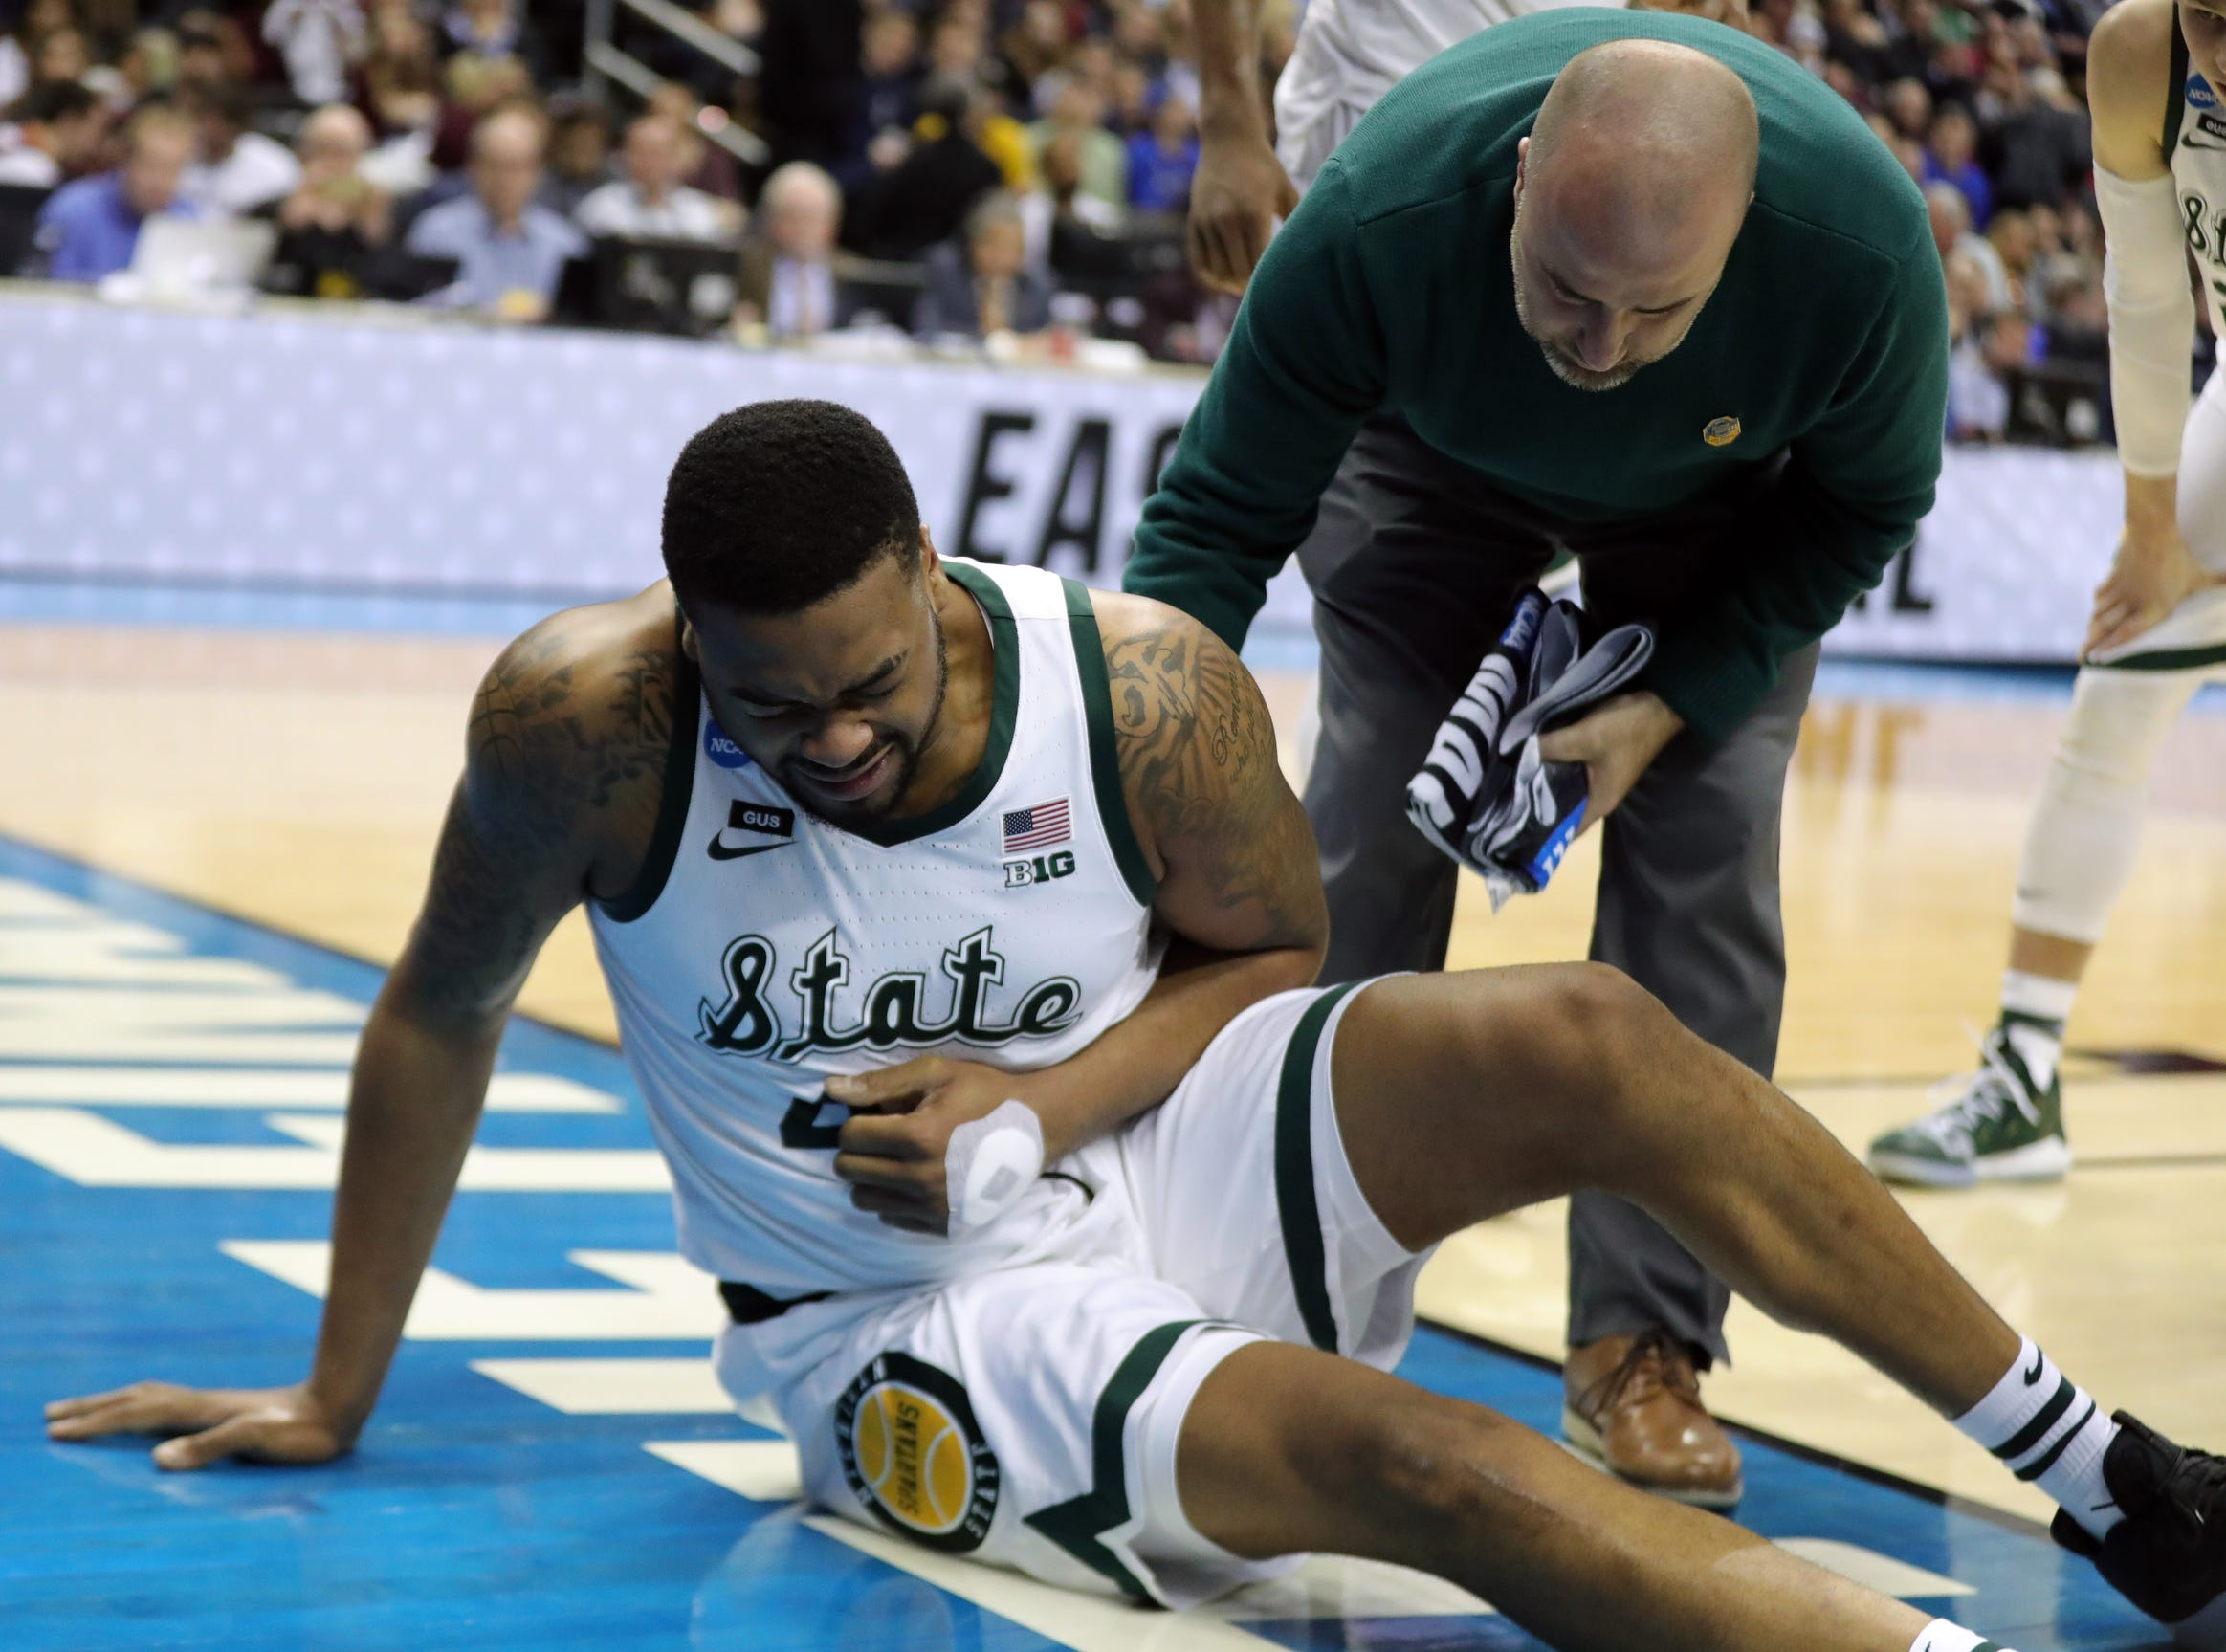 Michigan State forward Nick Ward goes down hurt during the second half of the 80-63 win over LSU in the NCAA tournament on Friday, March 29, 2019, in Washington.